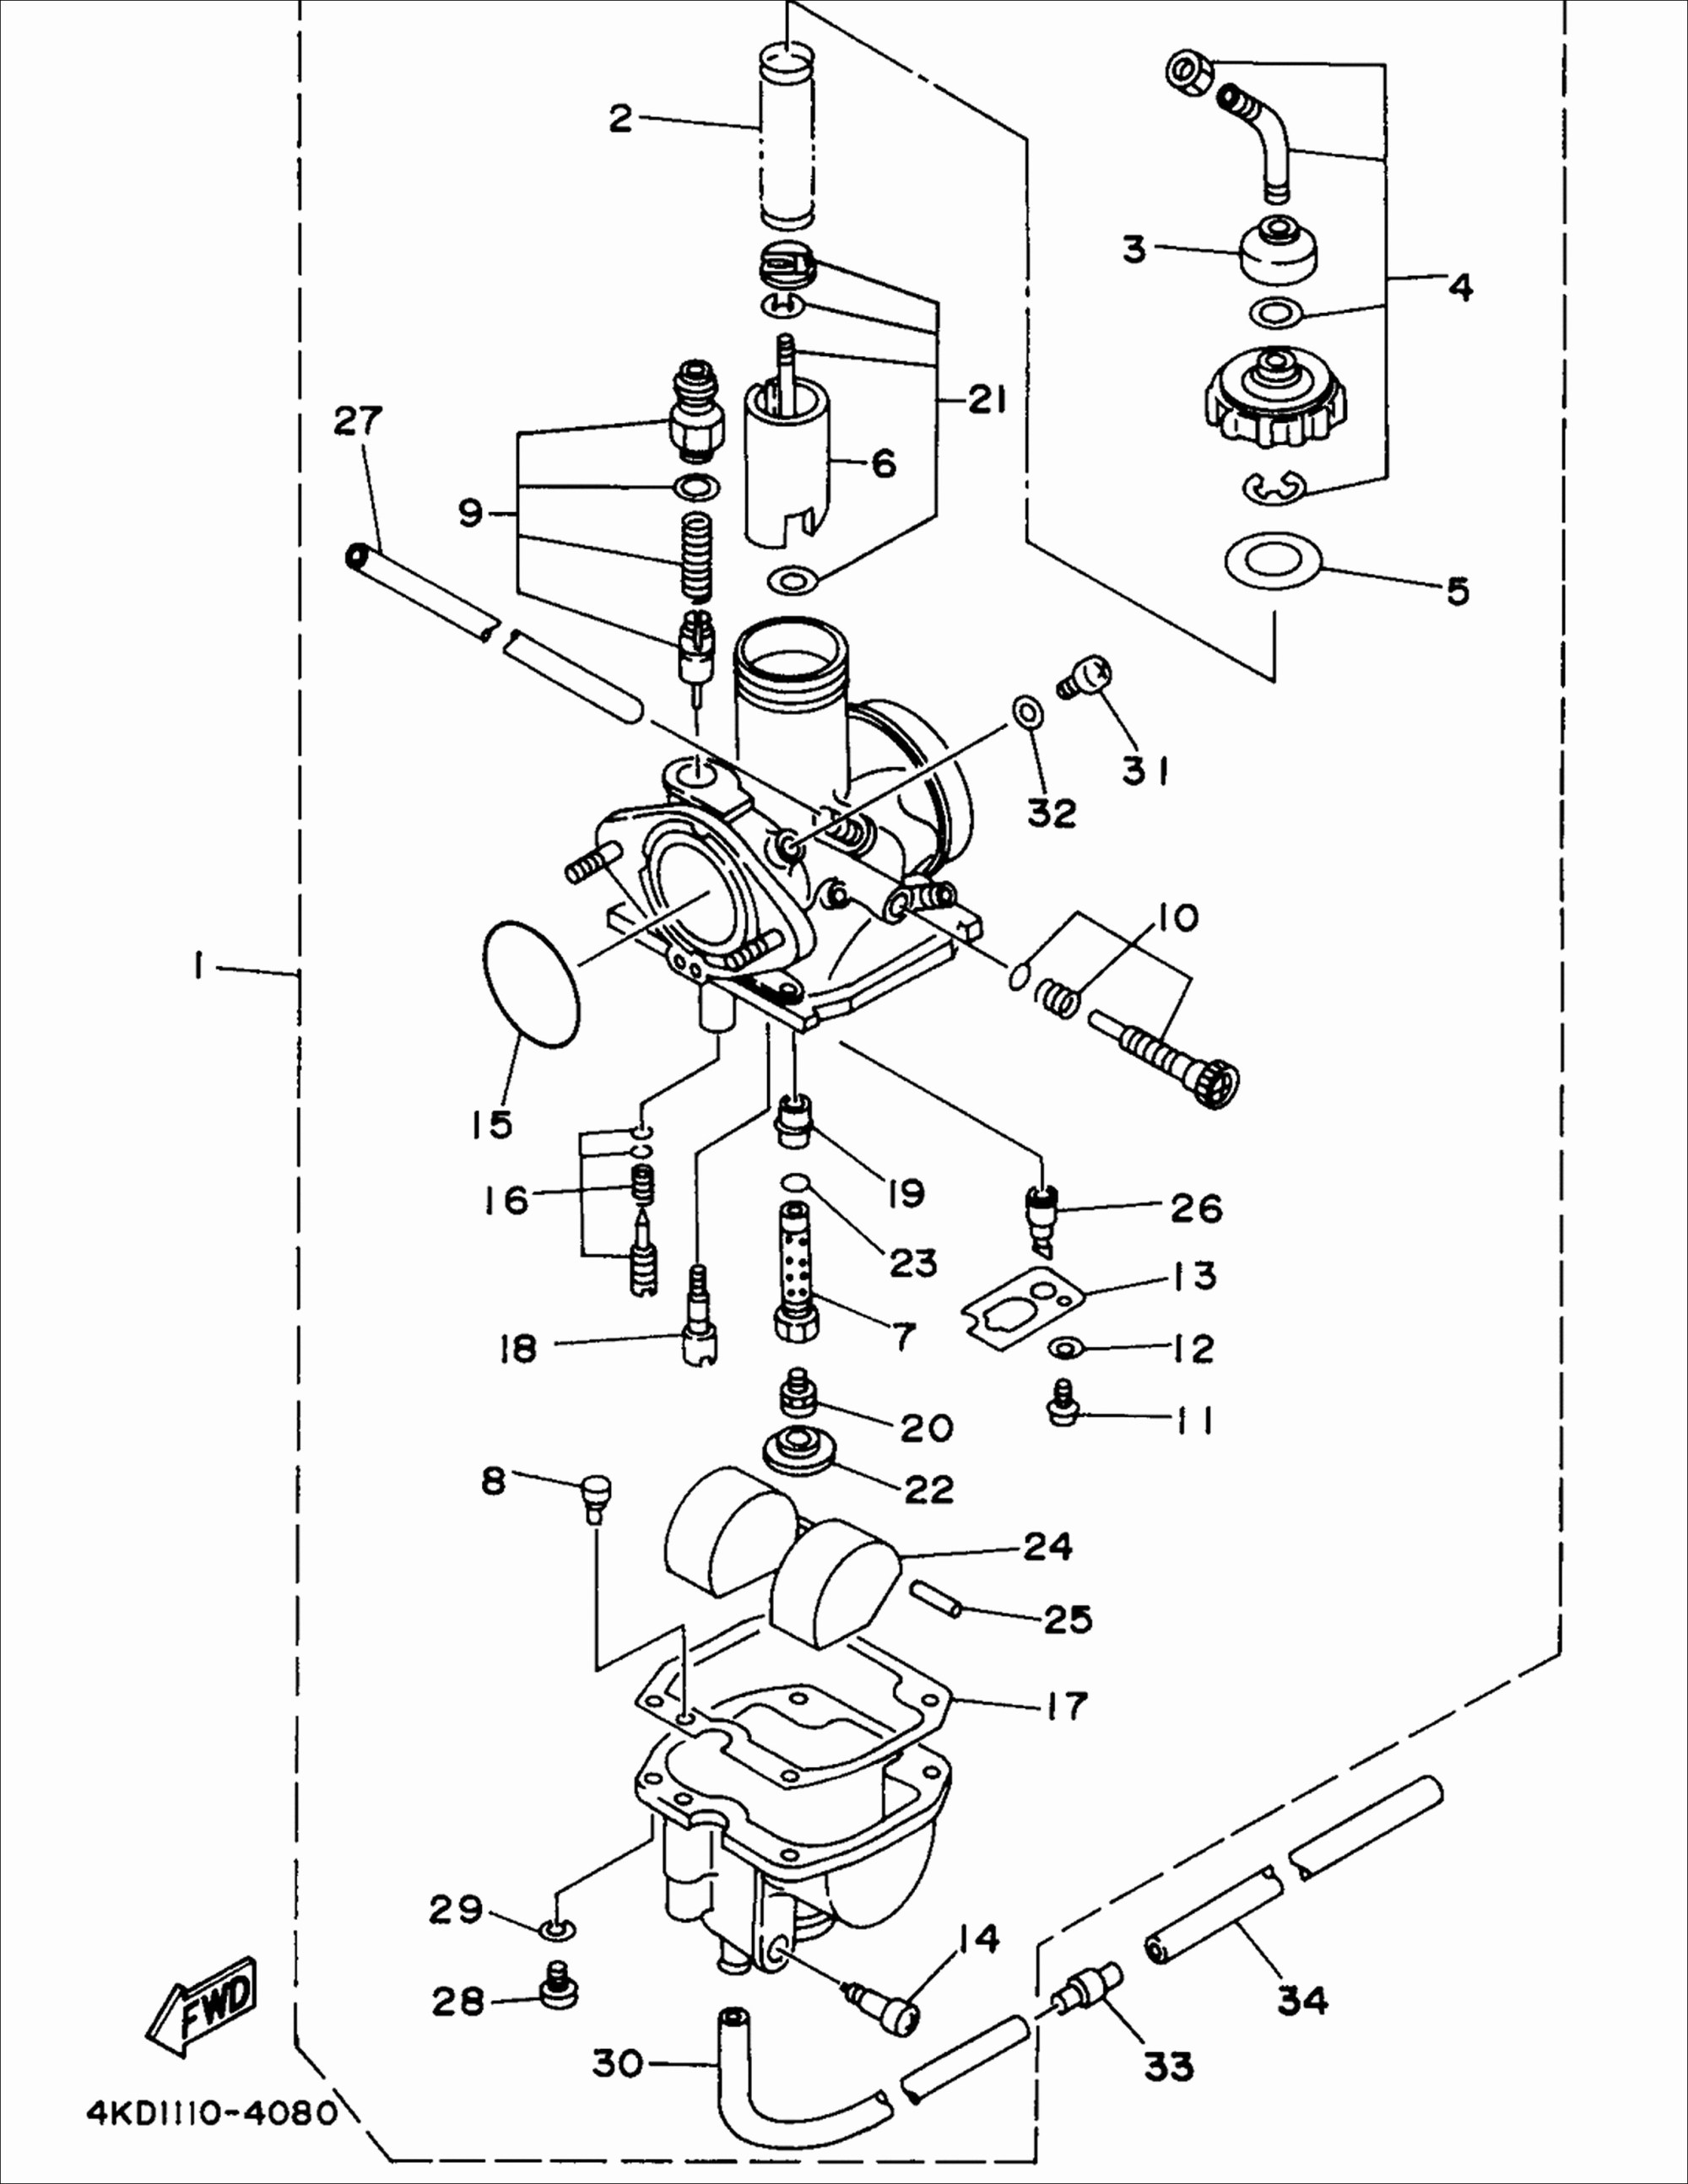 hight resolution of 2001 mitsubishi galant wiring schematic wiring library rh 1 akszer eu mitsubishi endeavor engine diagram mitsubishi lancer engine diagram